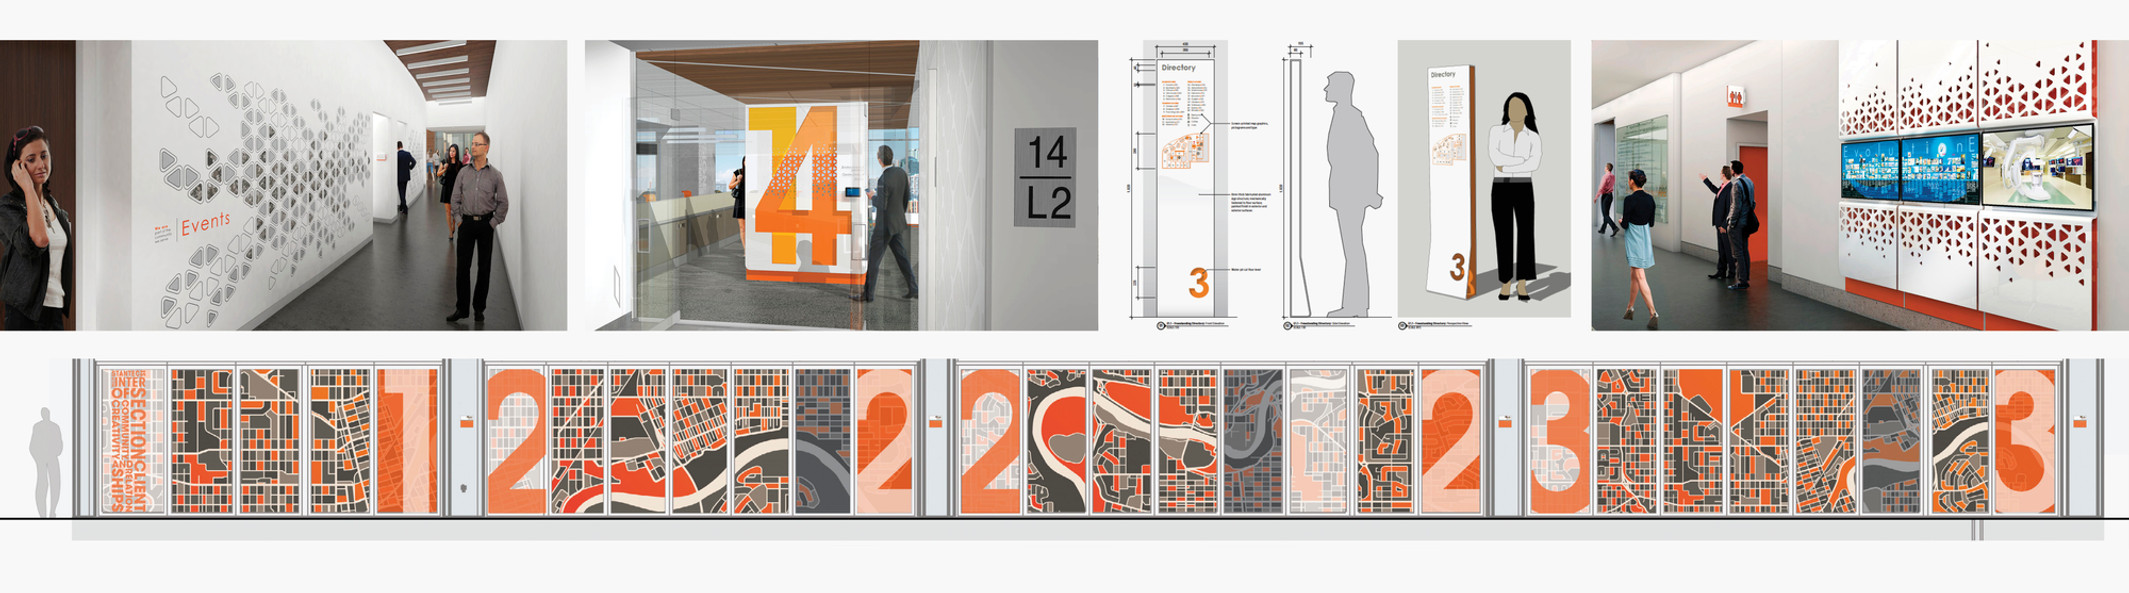 Brand design for workplace environments.